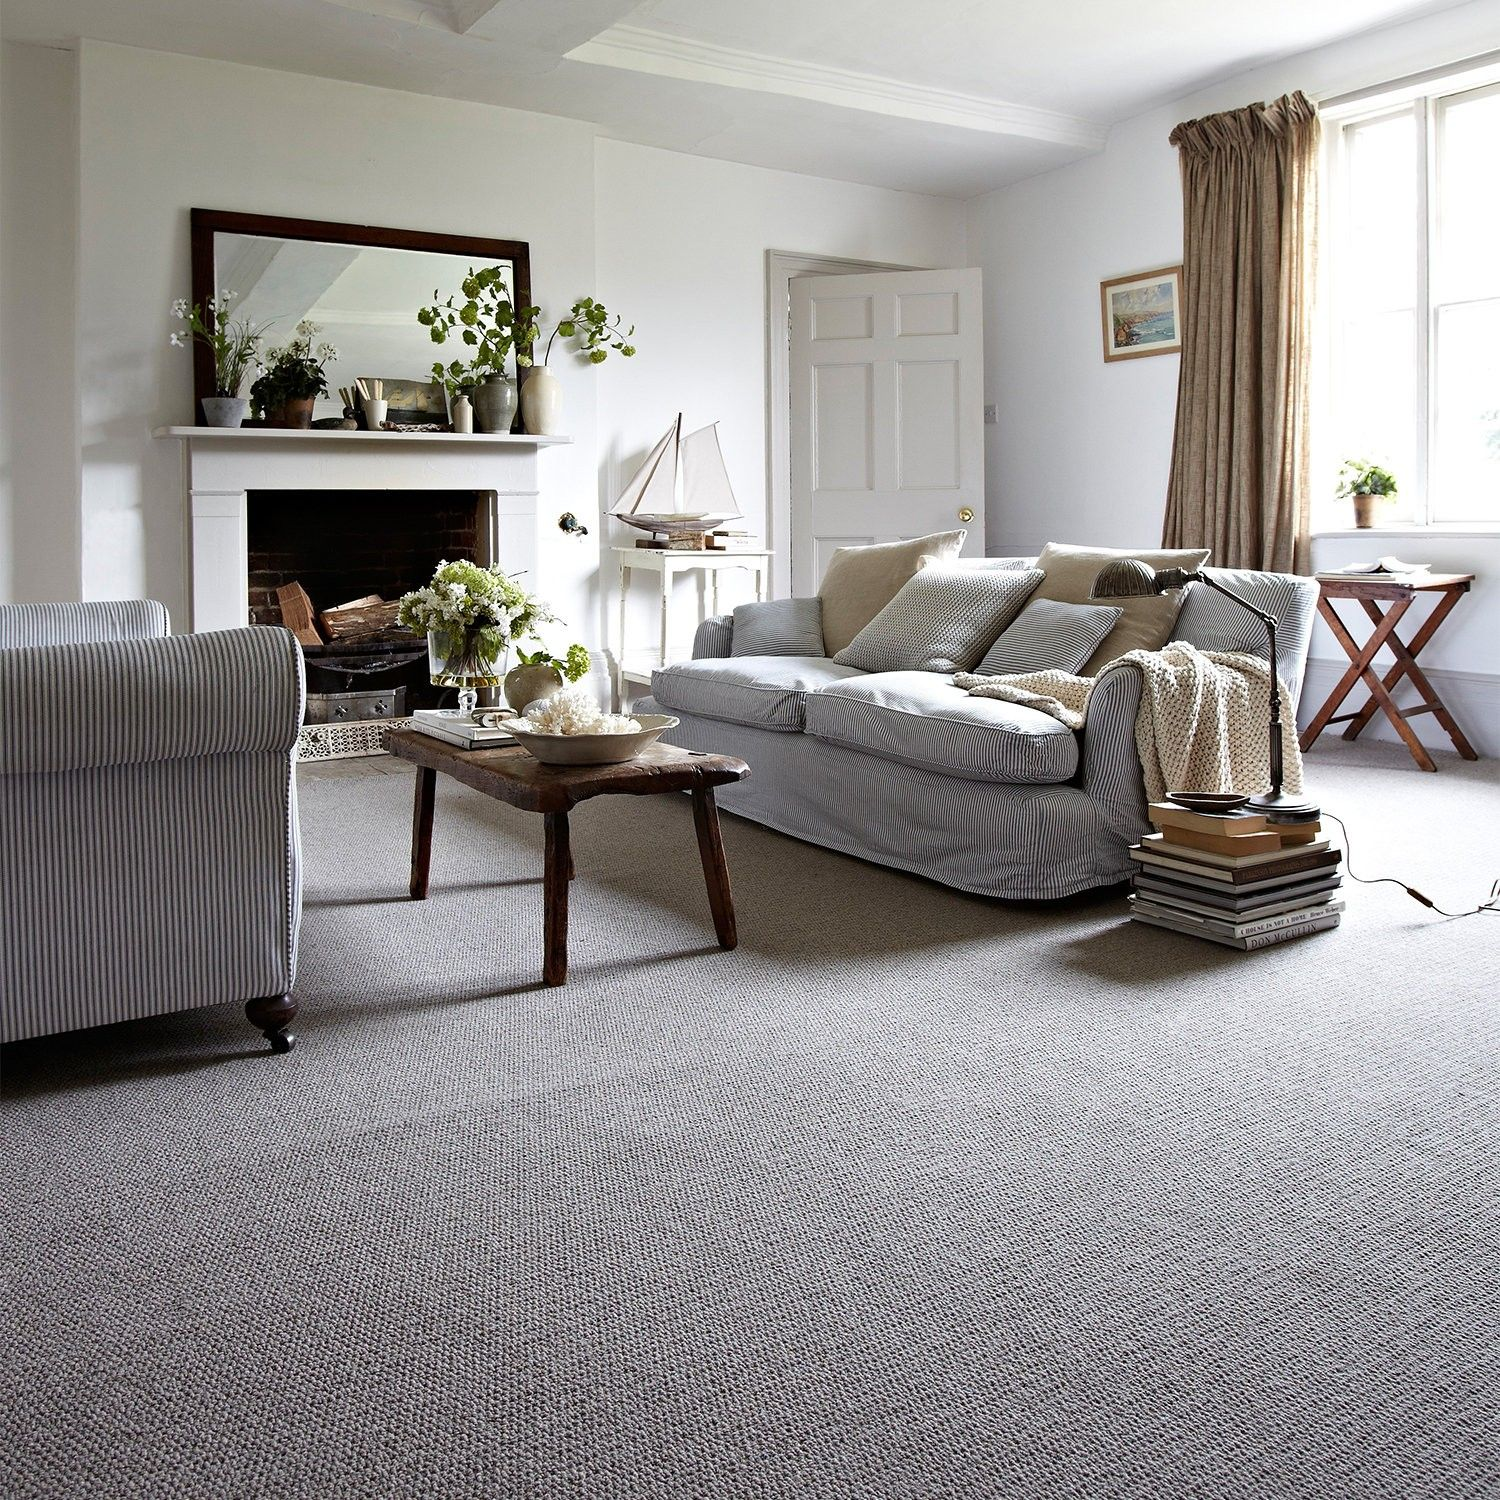 Zanzibar Deluxe Textured Carpet Grey Carpet Living Room Rugs In Living Room Living Room Carpet